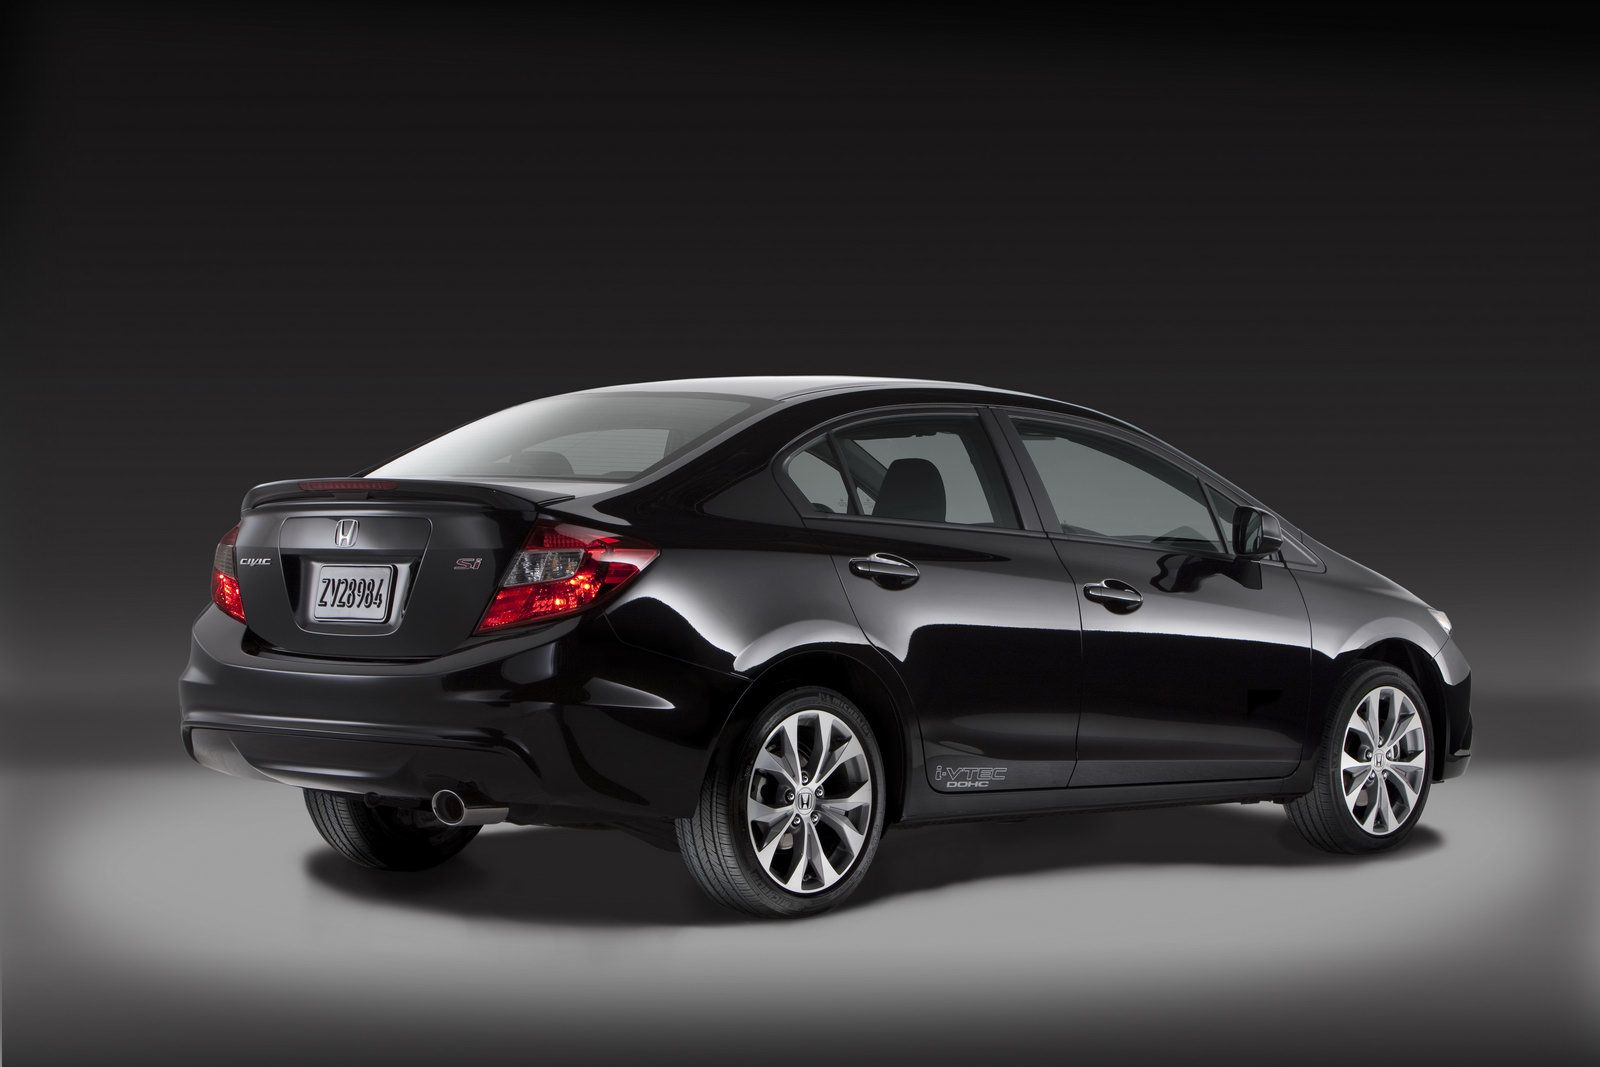 Honda civic coupe black 2012 probably the only dream car of mine that s actually possible